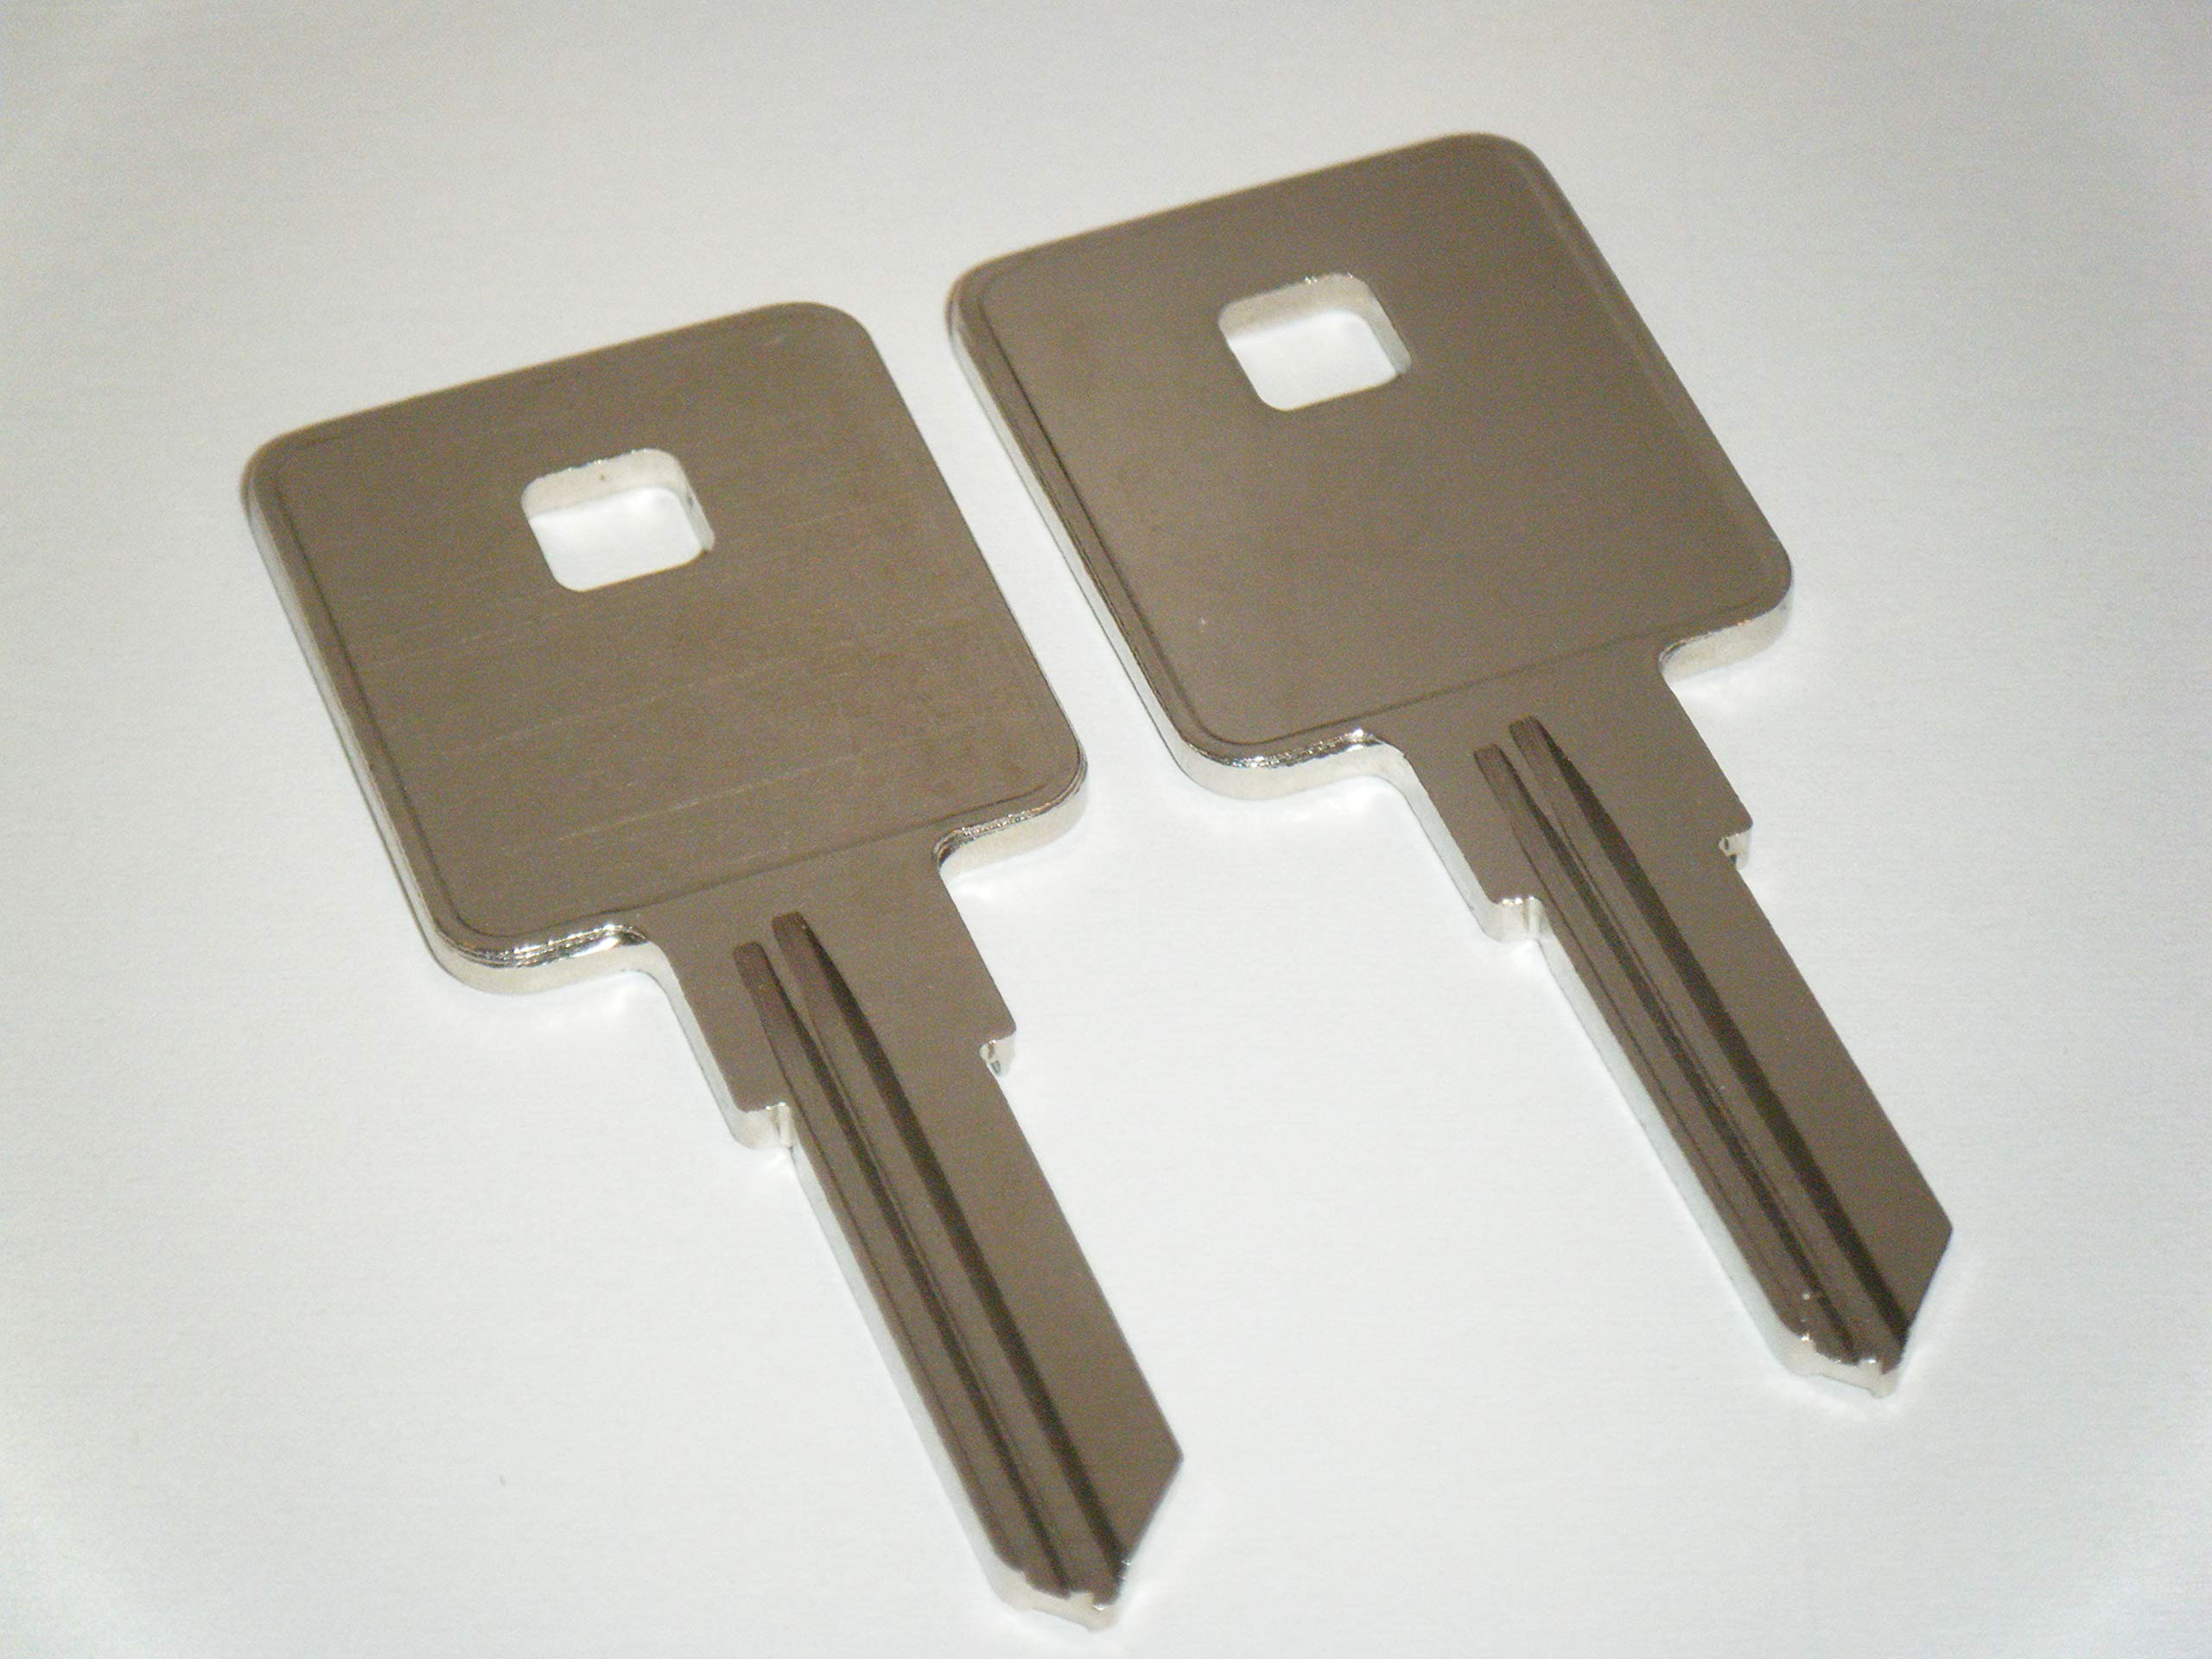 Ilco Replacement Keys for Trimark RV Locks Keys Cut to Your Lock/Key Number TM103 from TM101 to TM150 (KS300) (TM103)